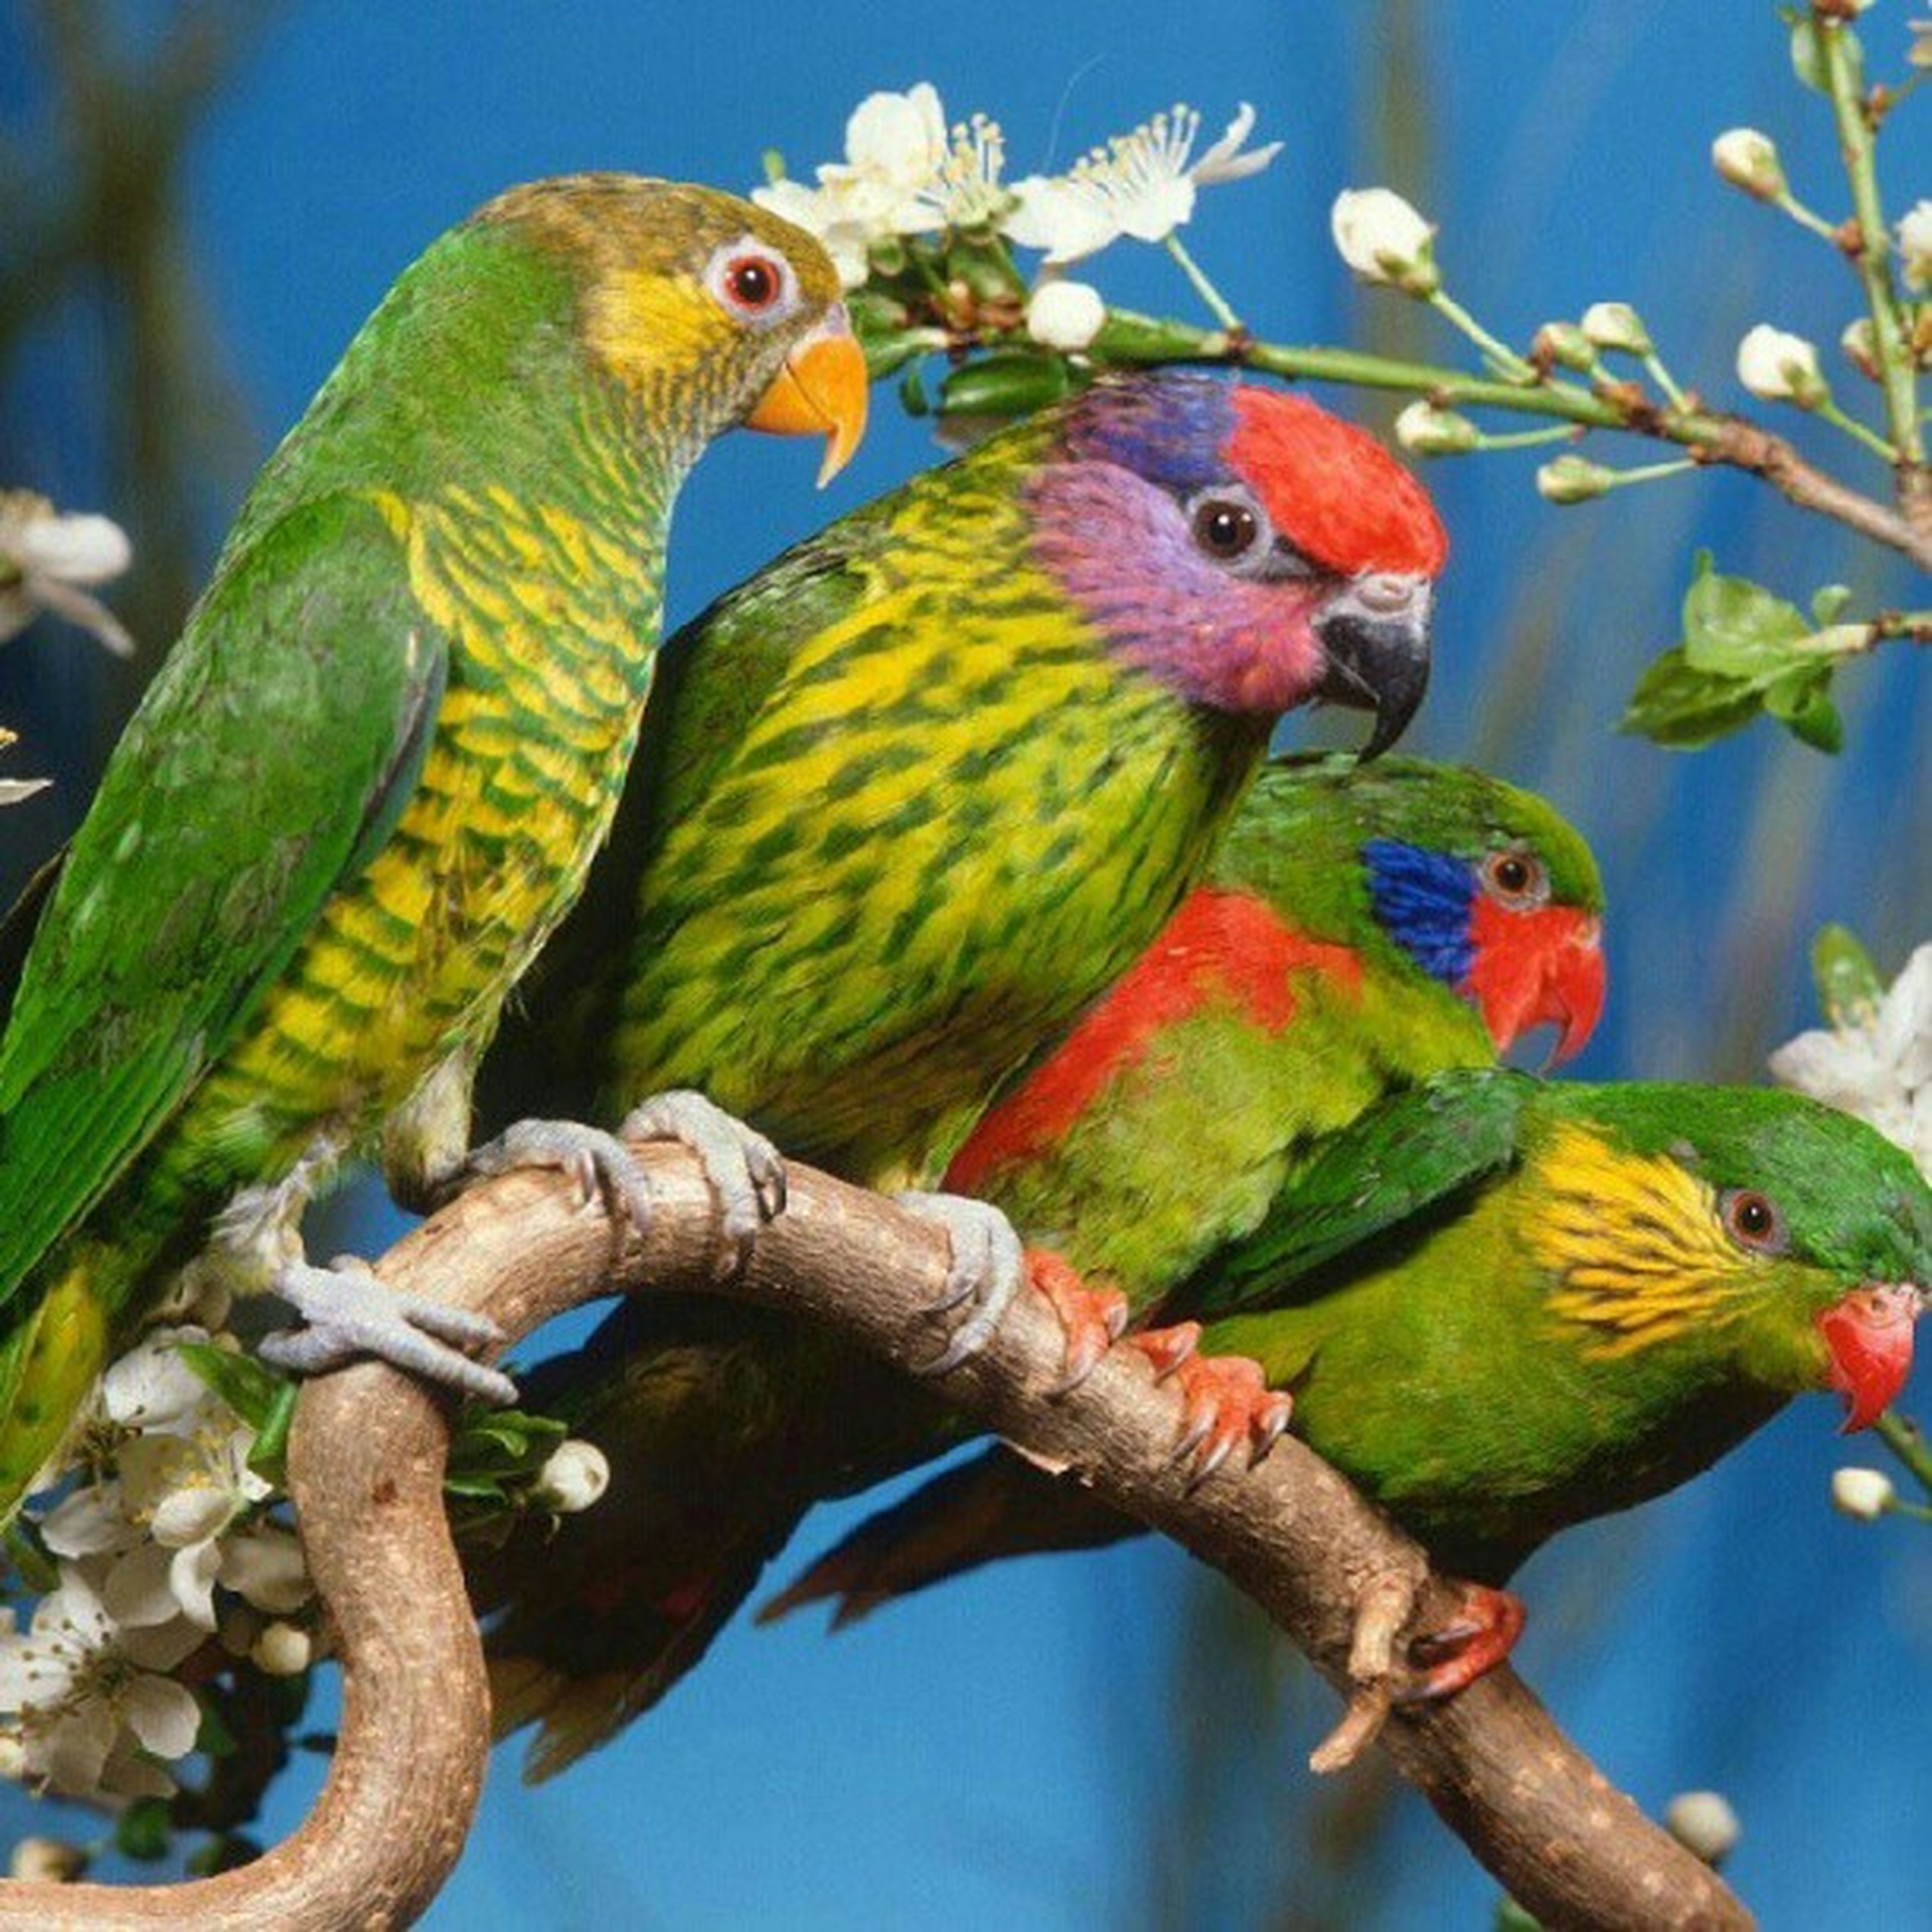 bird, animal themes, animals in the wild, parrot, wildlife, perching, branch, one animal, multi colored, low angle view, beak, blue, tree, two animals, close-up, nature, focus on foreground, day, outdoors, no people